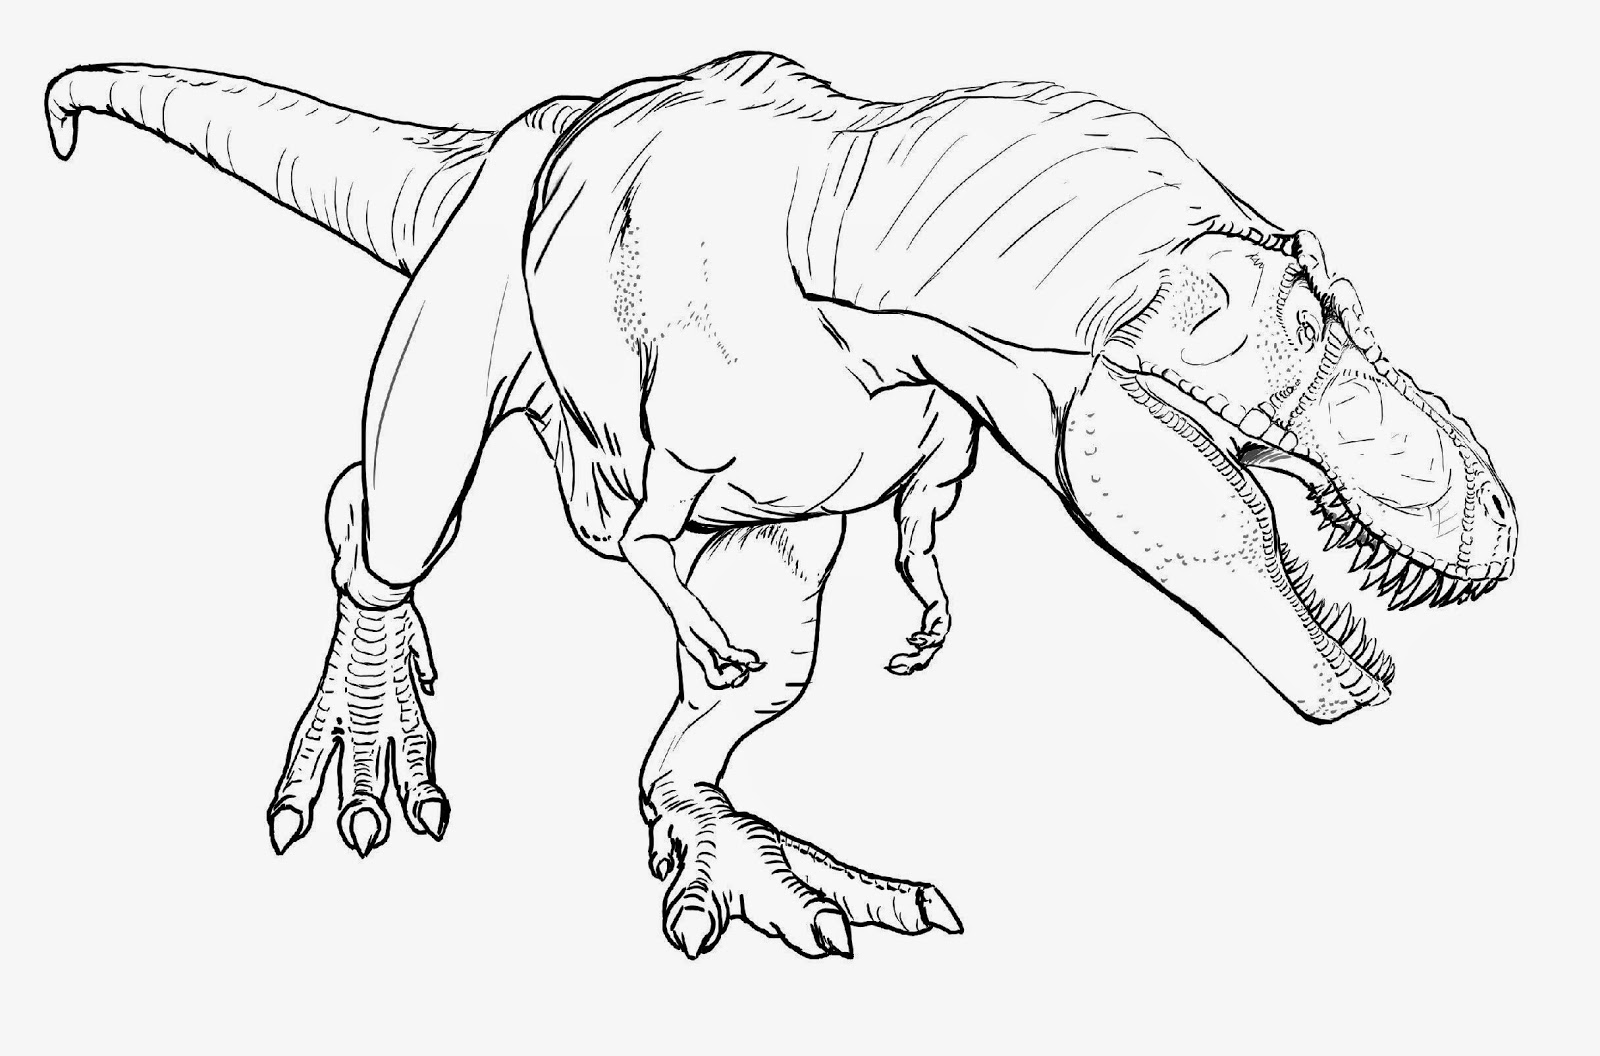 t rex colouring pictures t rex coloring pages free printable images for coloring t pictures colouring rex